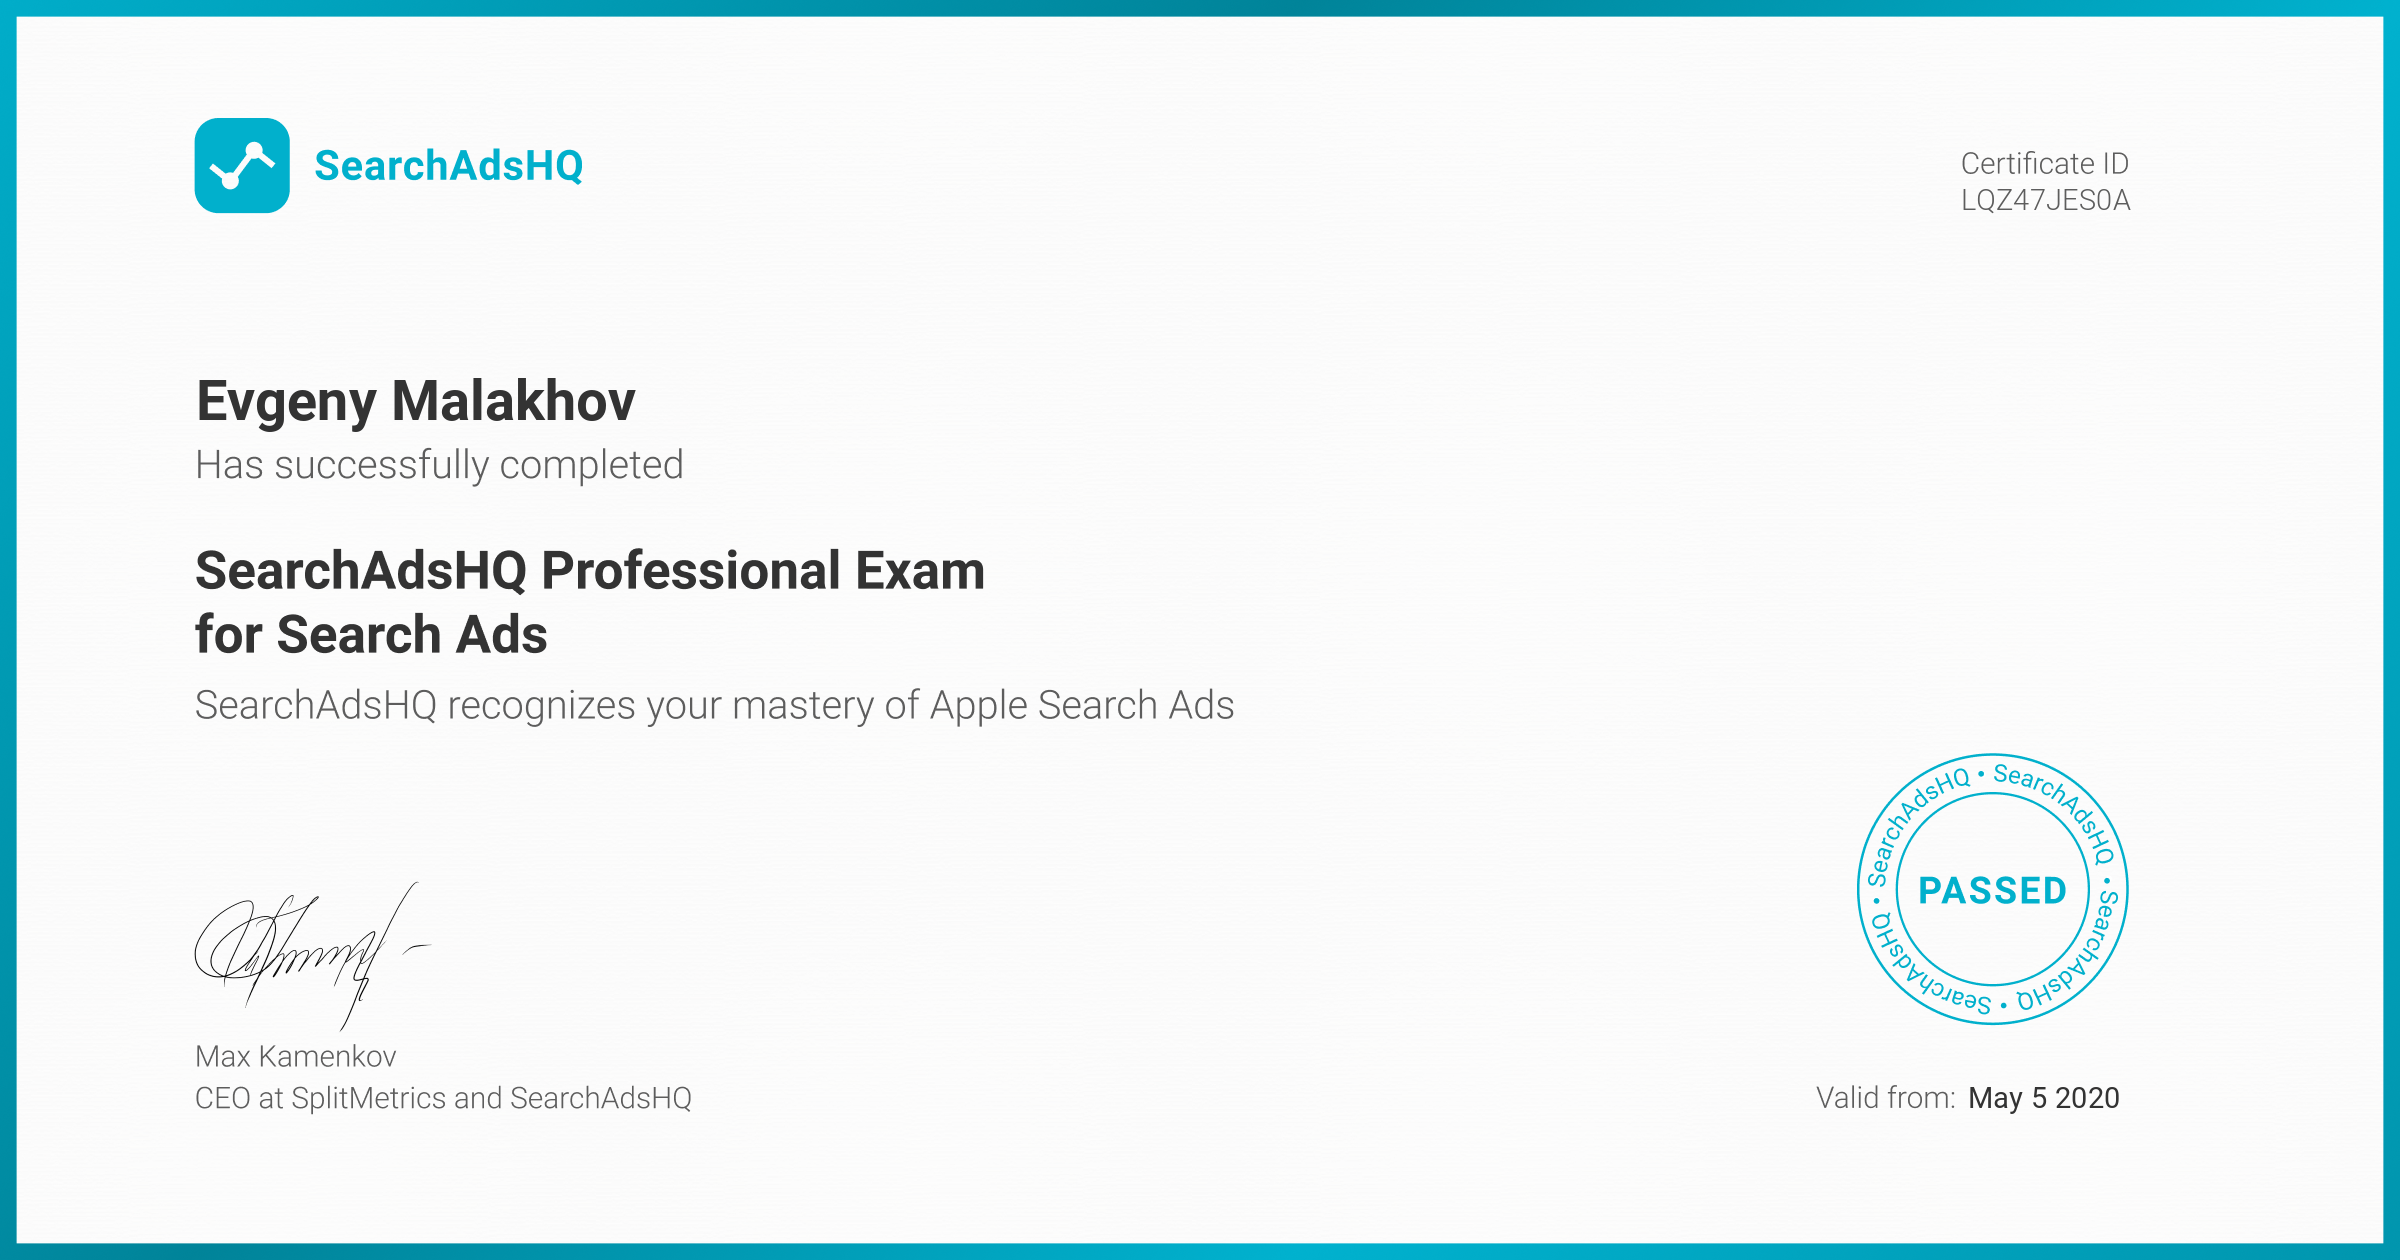 Certificate for Evgeny Malakhov | SearchAdsHQ Professional Exam for Search Ads